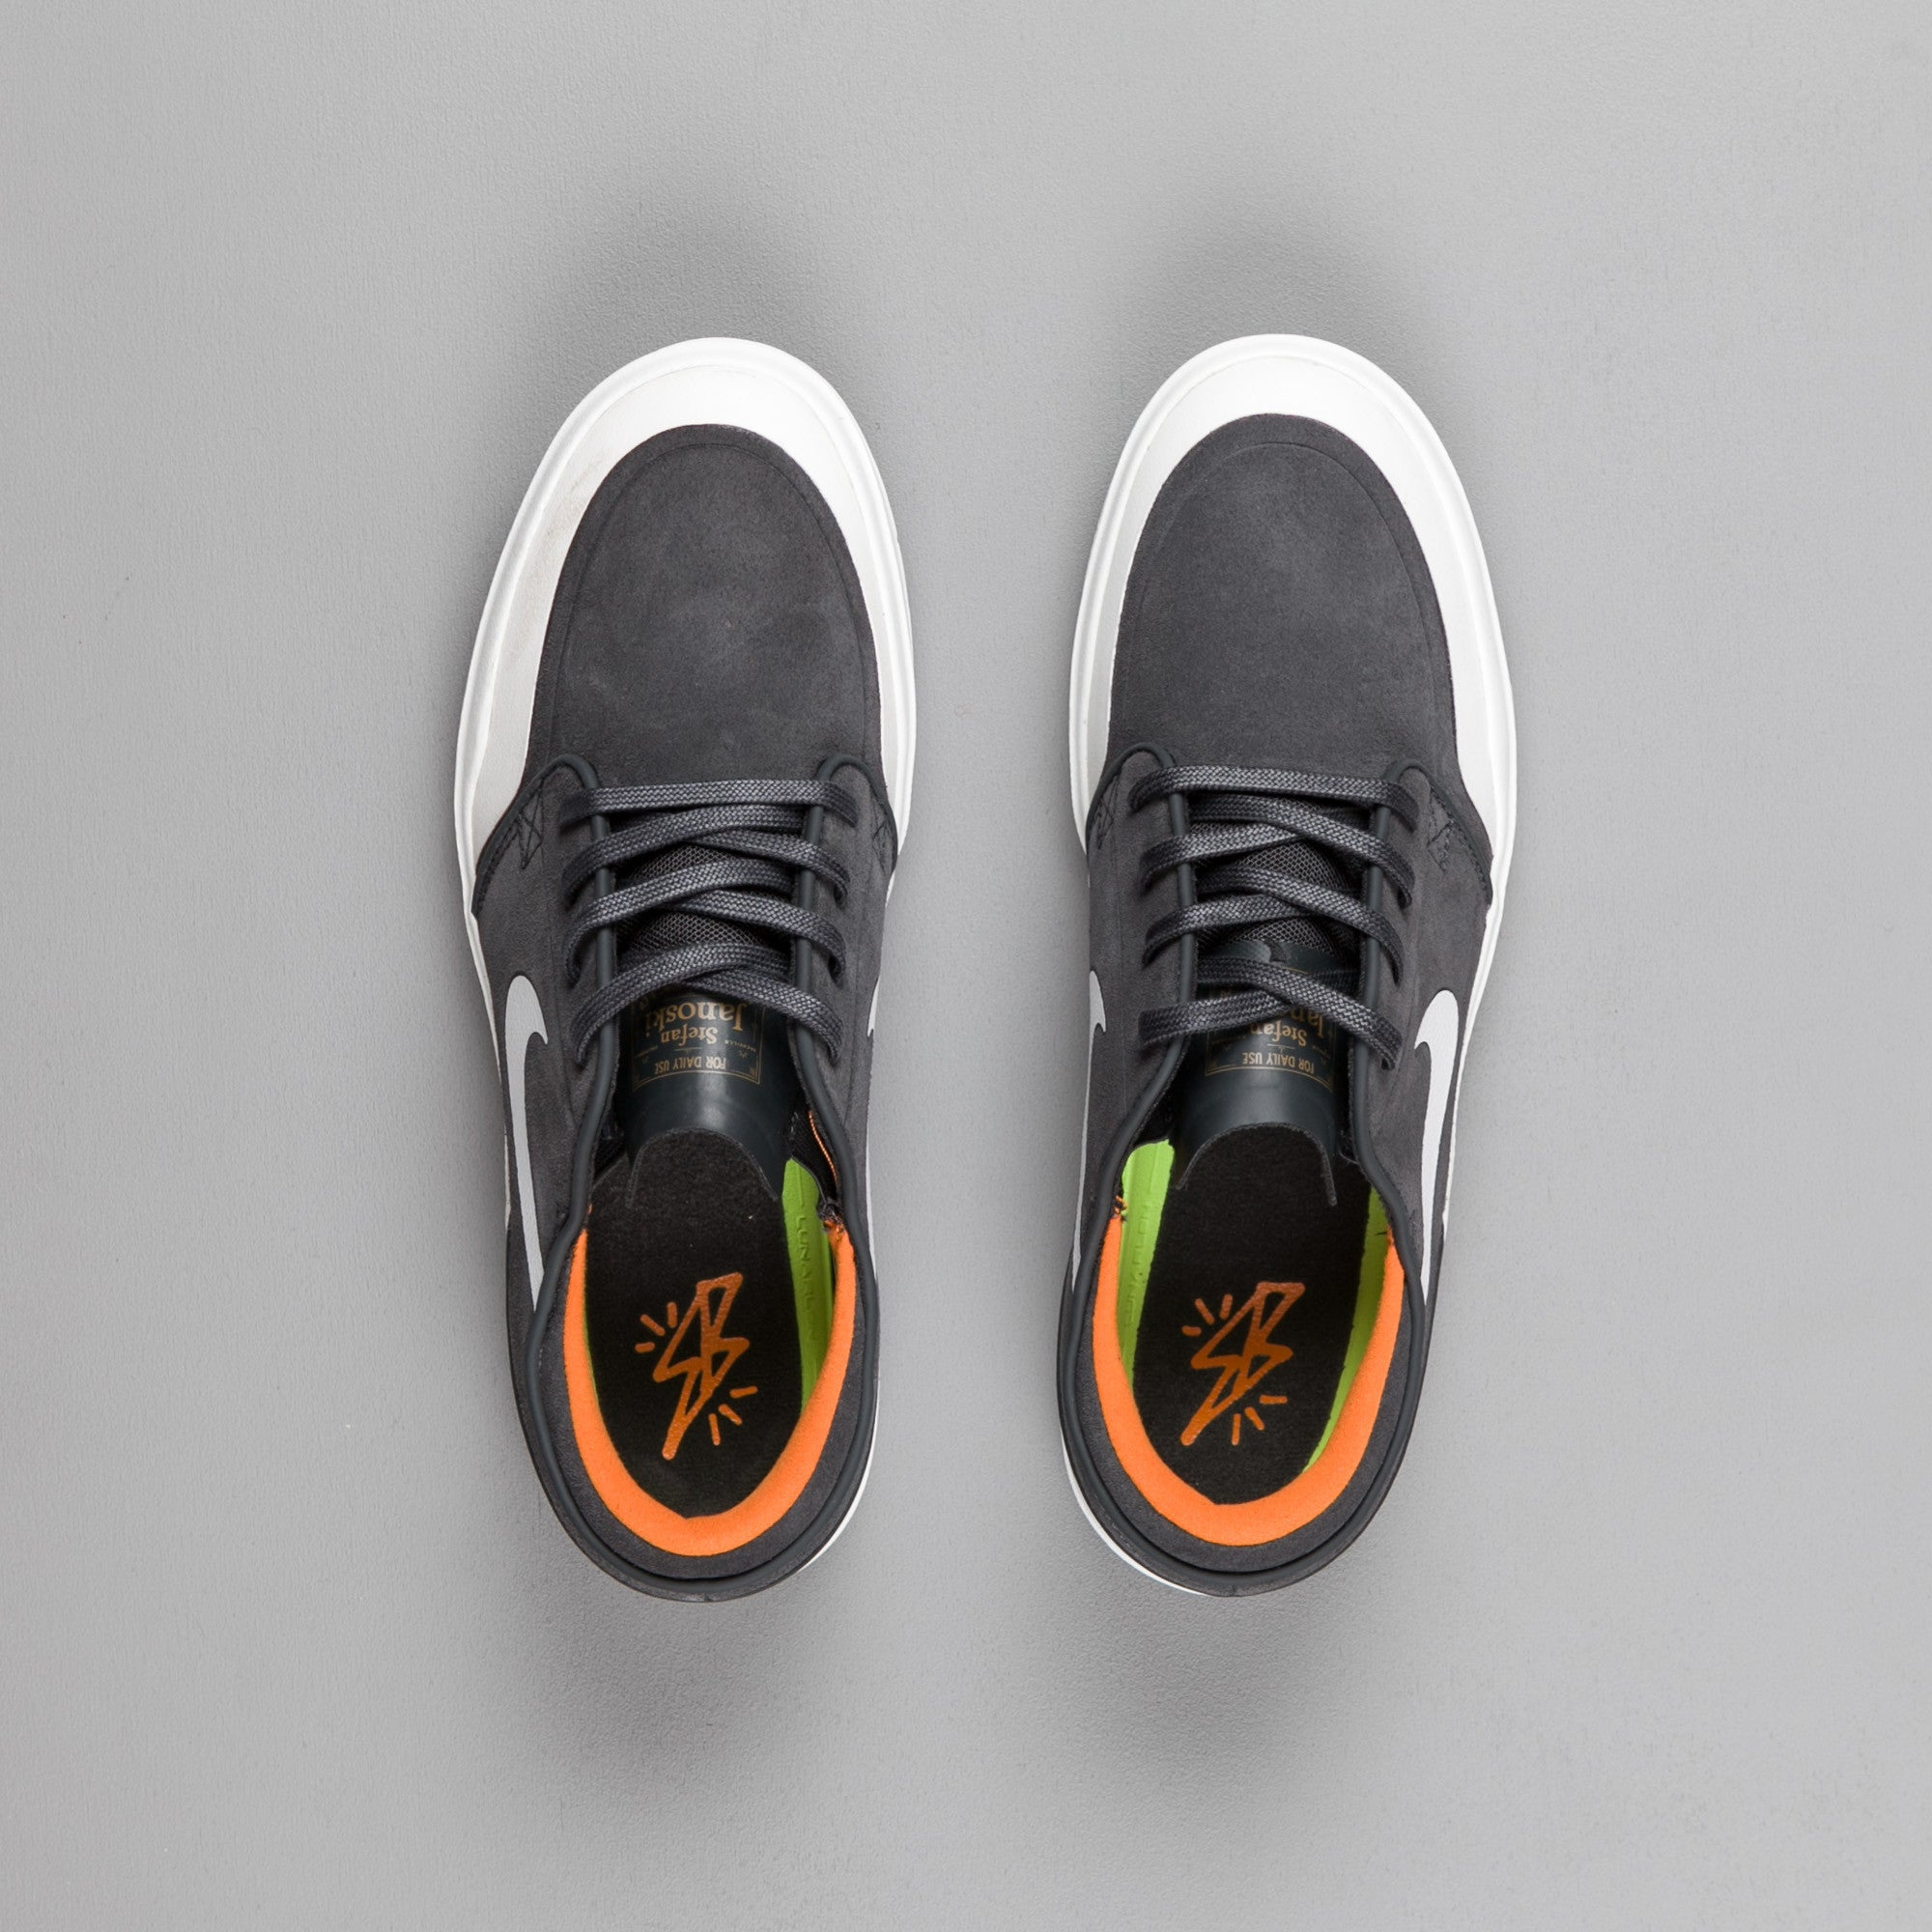 Nike SB Stefan Janoski Hyperfeel XT Shoes - Anthracite / White - Summit White - Clay Orange